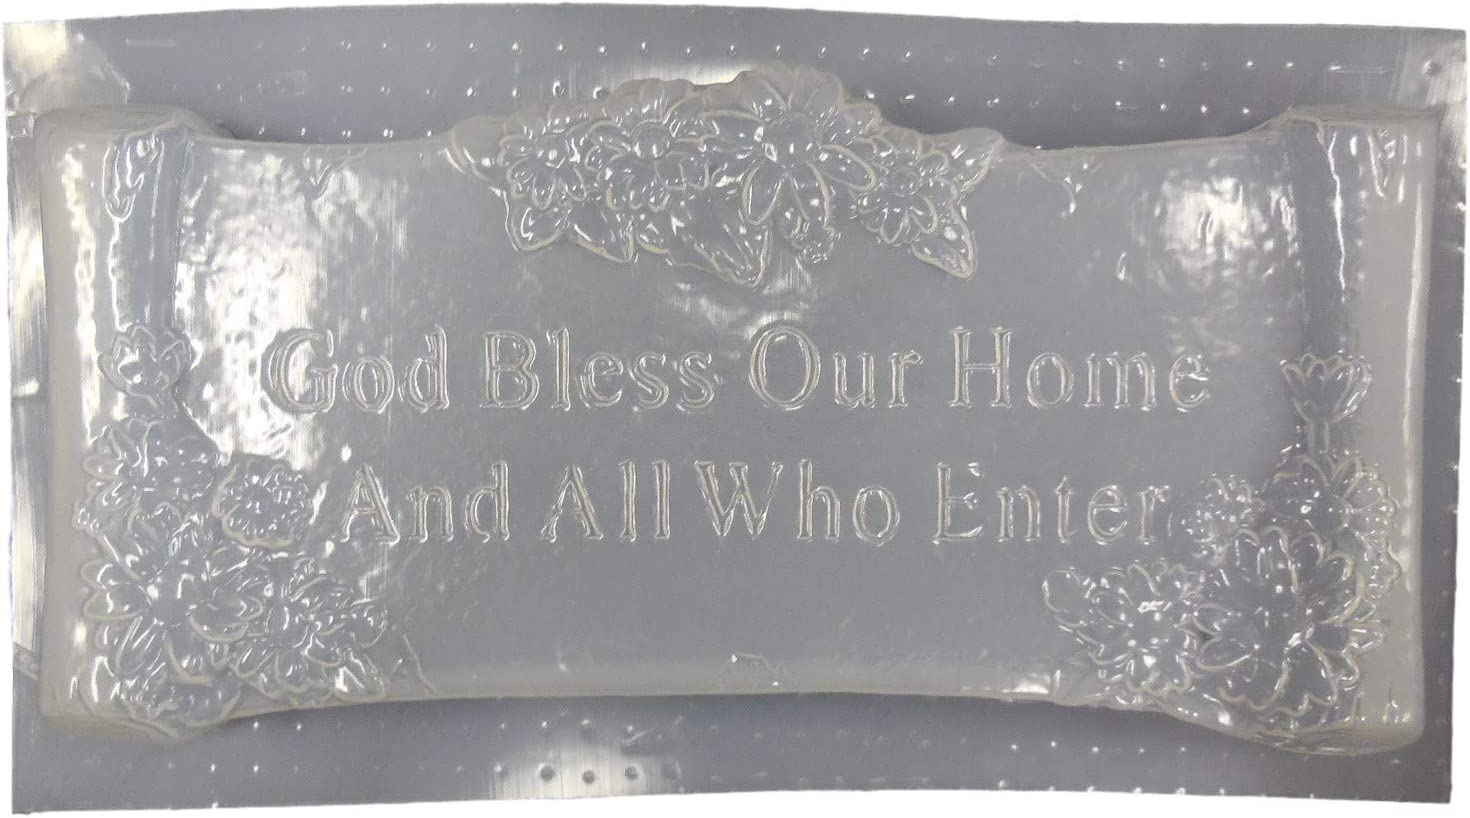 God Bless Our Home Plaque Concrete or Plaster Mold 7218